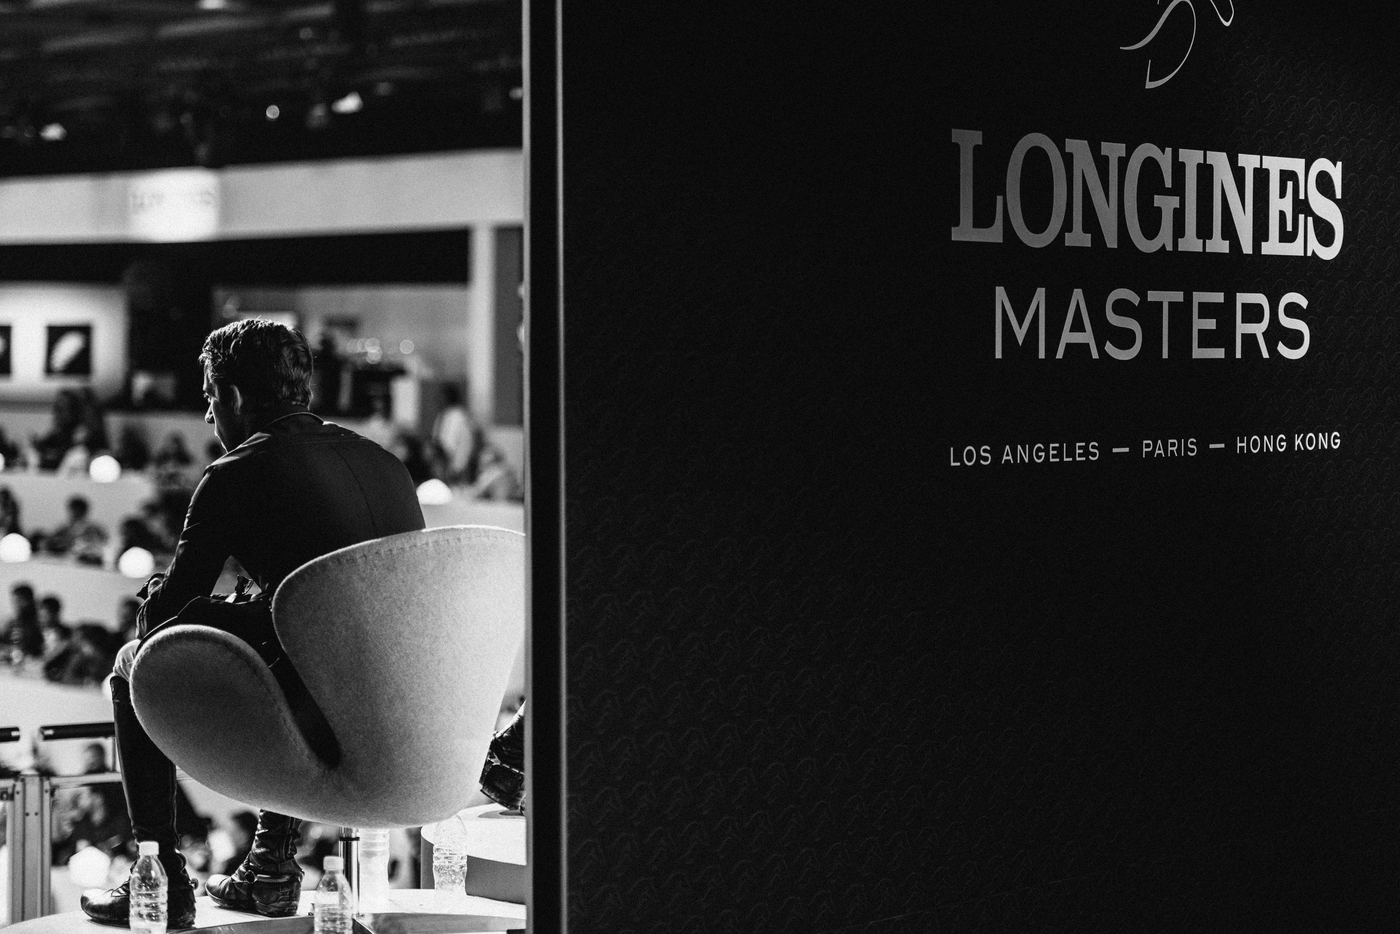 Longines Show Jumping Event: Longines is looking forward to seeing the top international riders competing in the glamorous atmosphere of the Longines Masters of Paris 3